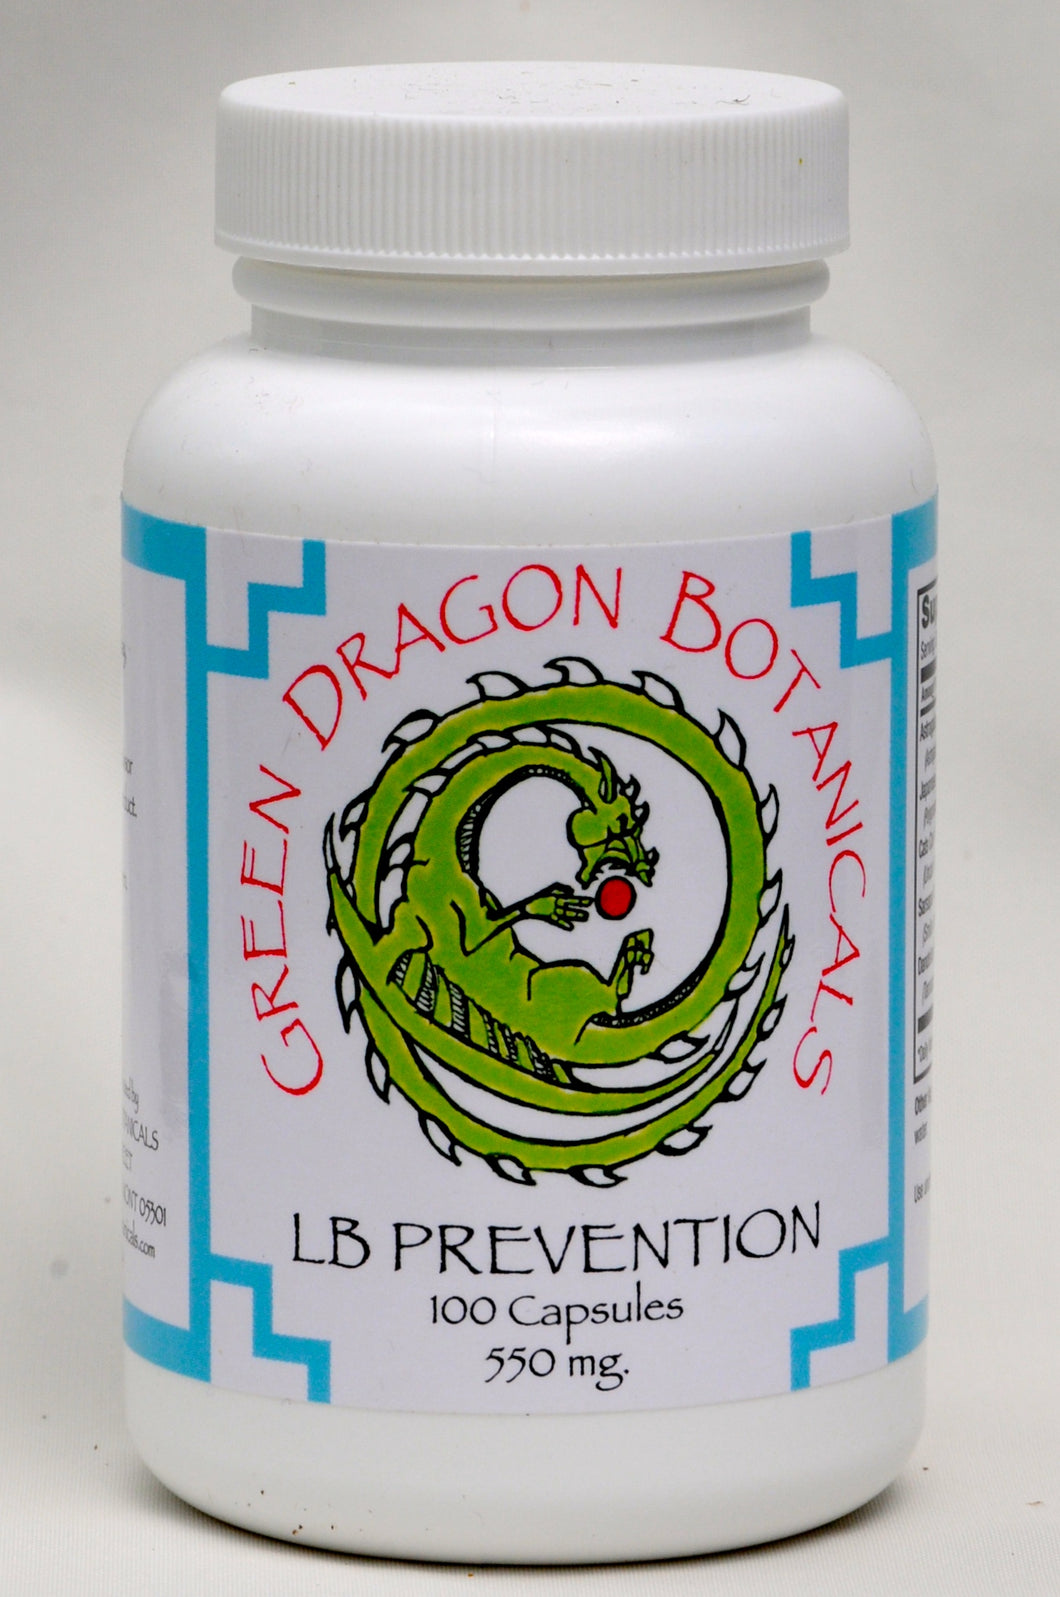 LB PREVENTION Protocol - 100 capsules